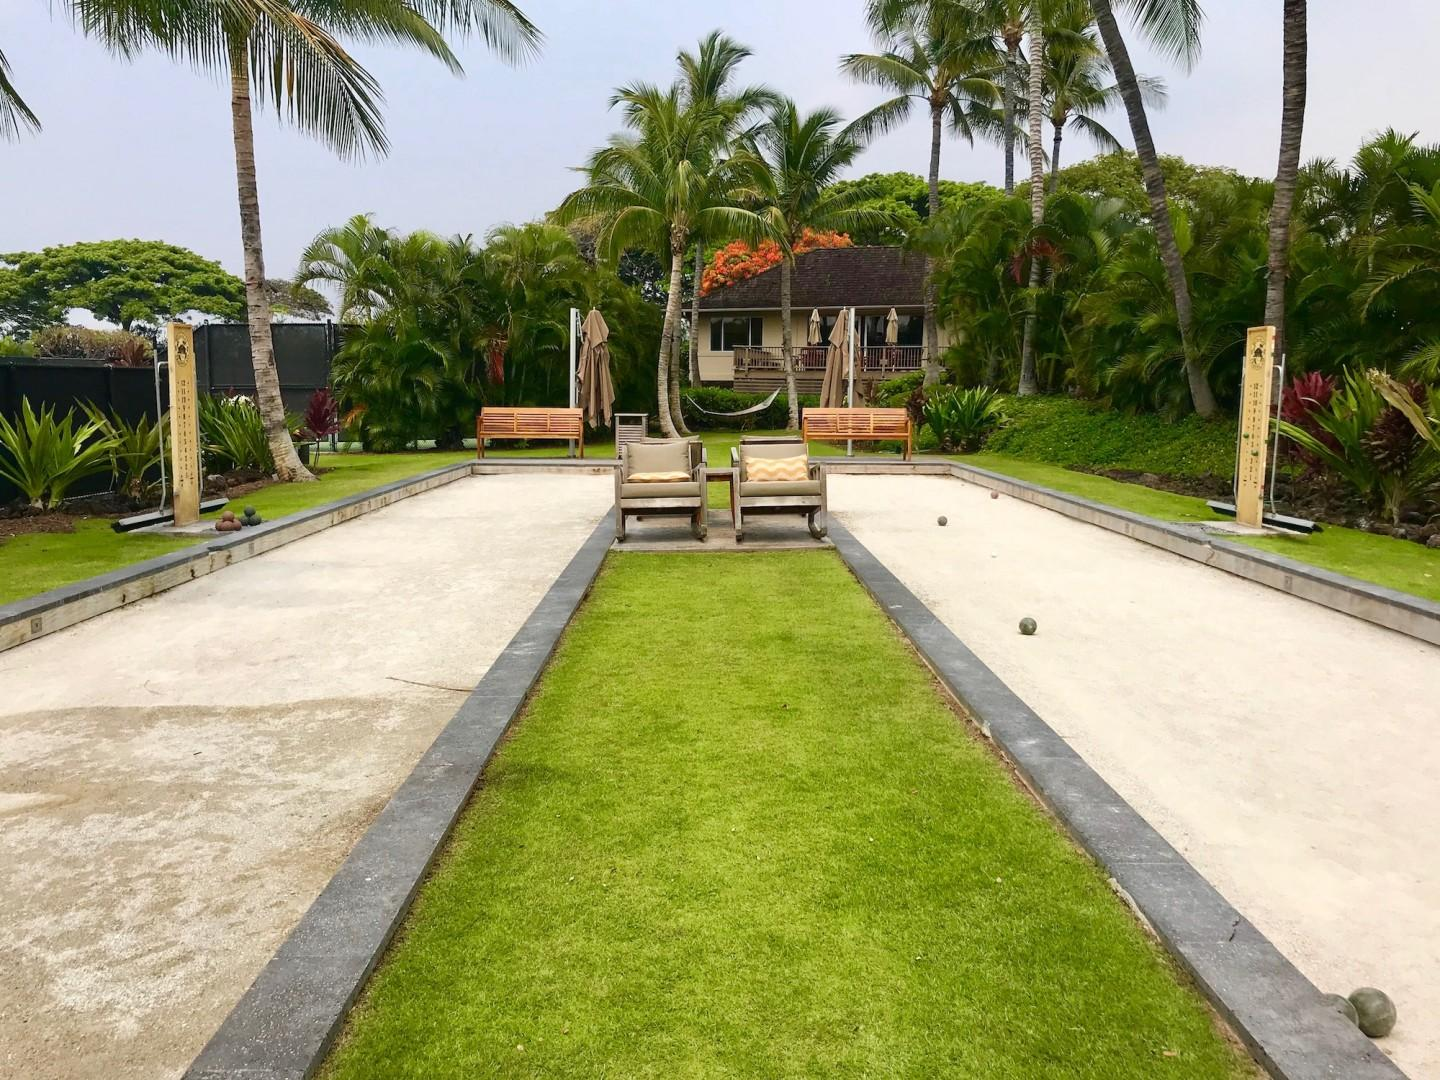 Four Seasons Resort bocce ball court.